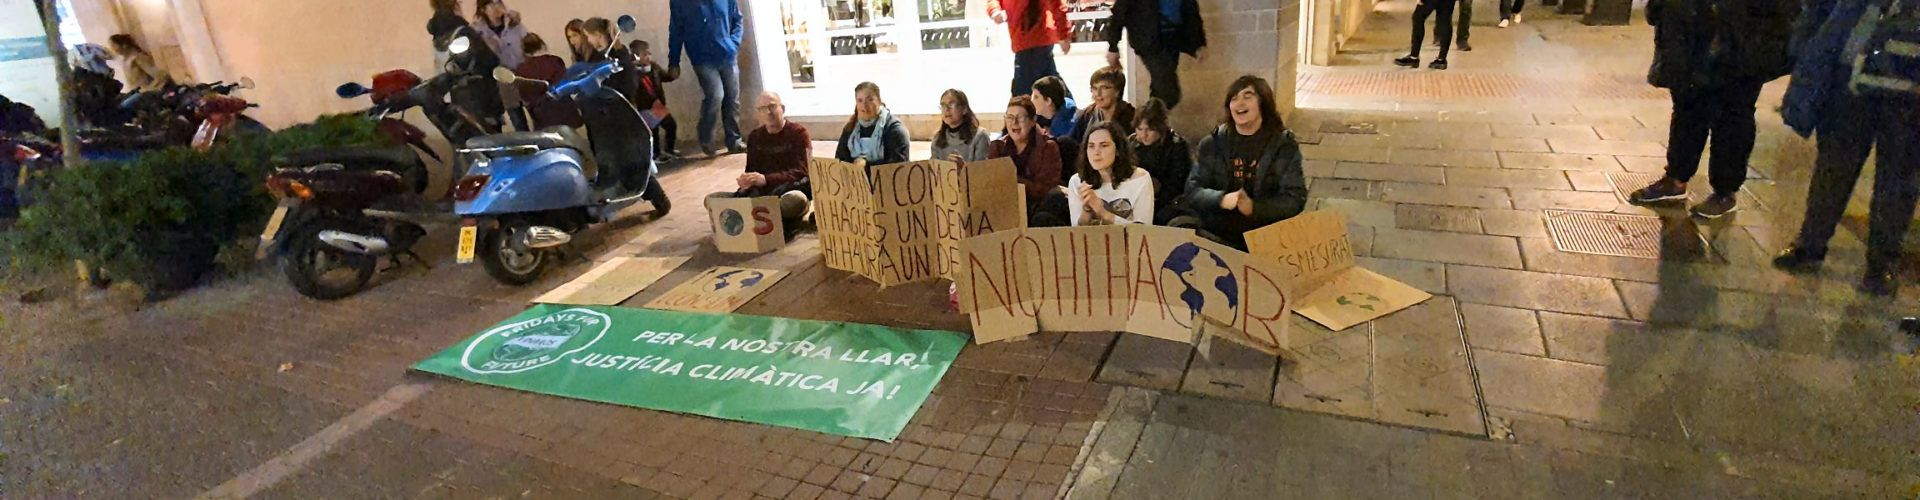 Fridays For Future Vinaròs contra el Black Friday